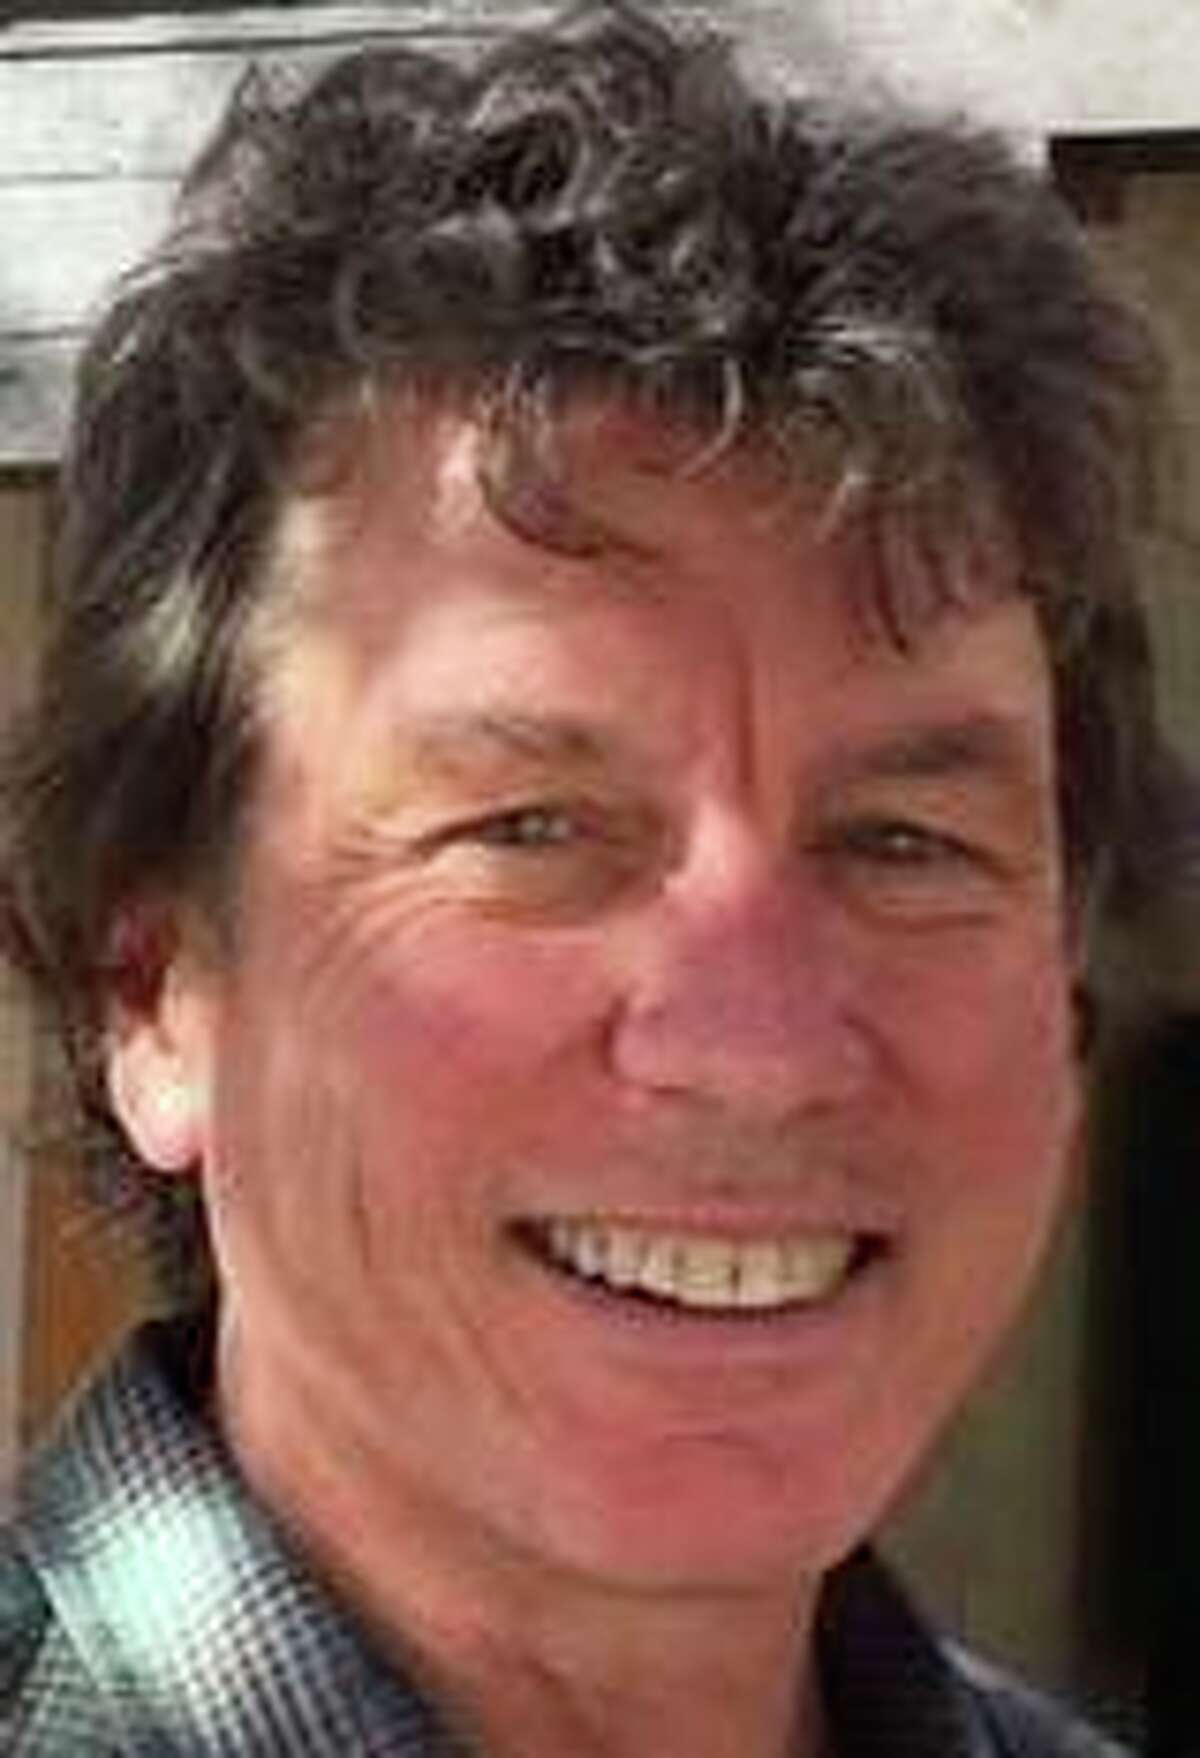 A photograph of Lyle Keller, who was reported missing from his home on Peaks Pike Road in the outskirts of Occidental and Sebastopol, but later found alive.